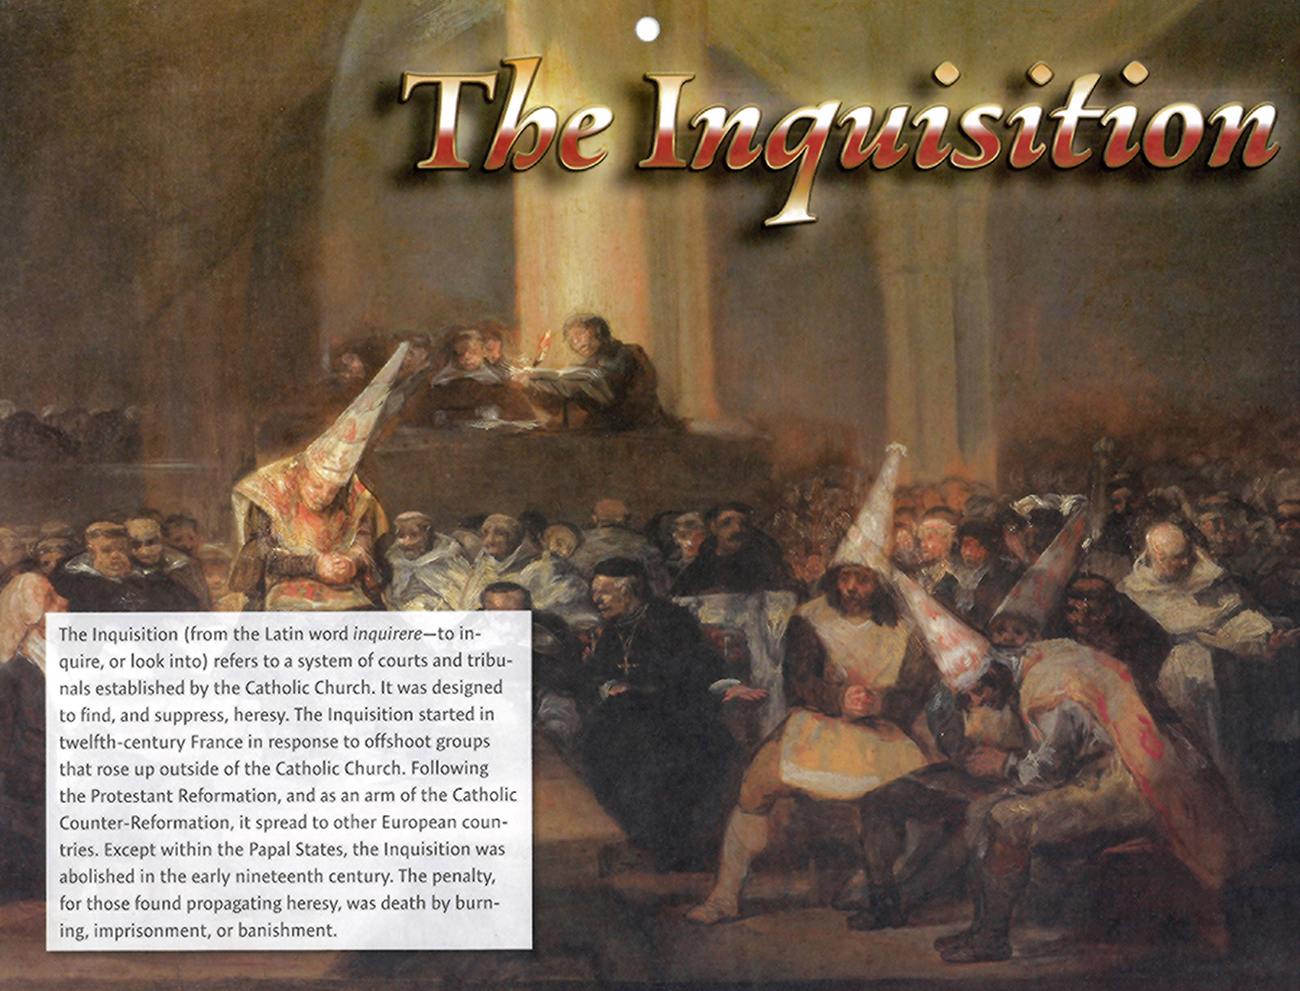 2016 Prophecy Calendar: July - The Inquisition